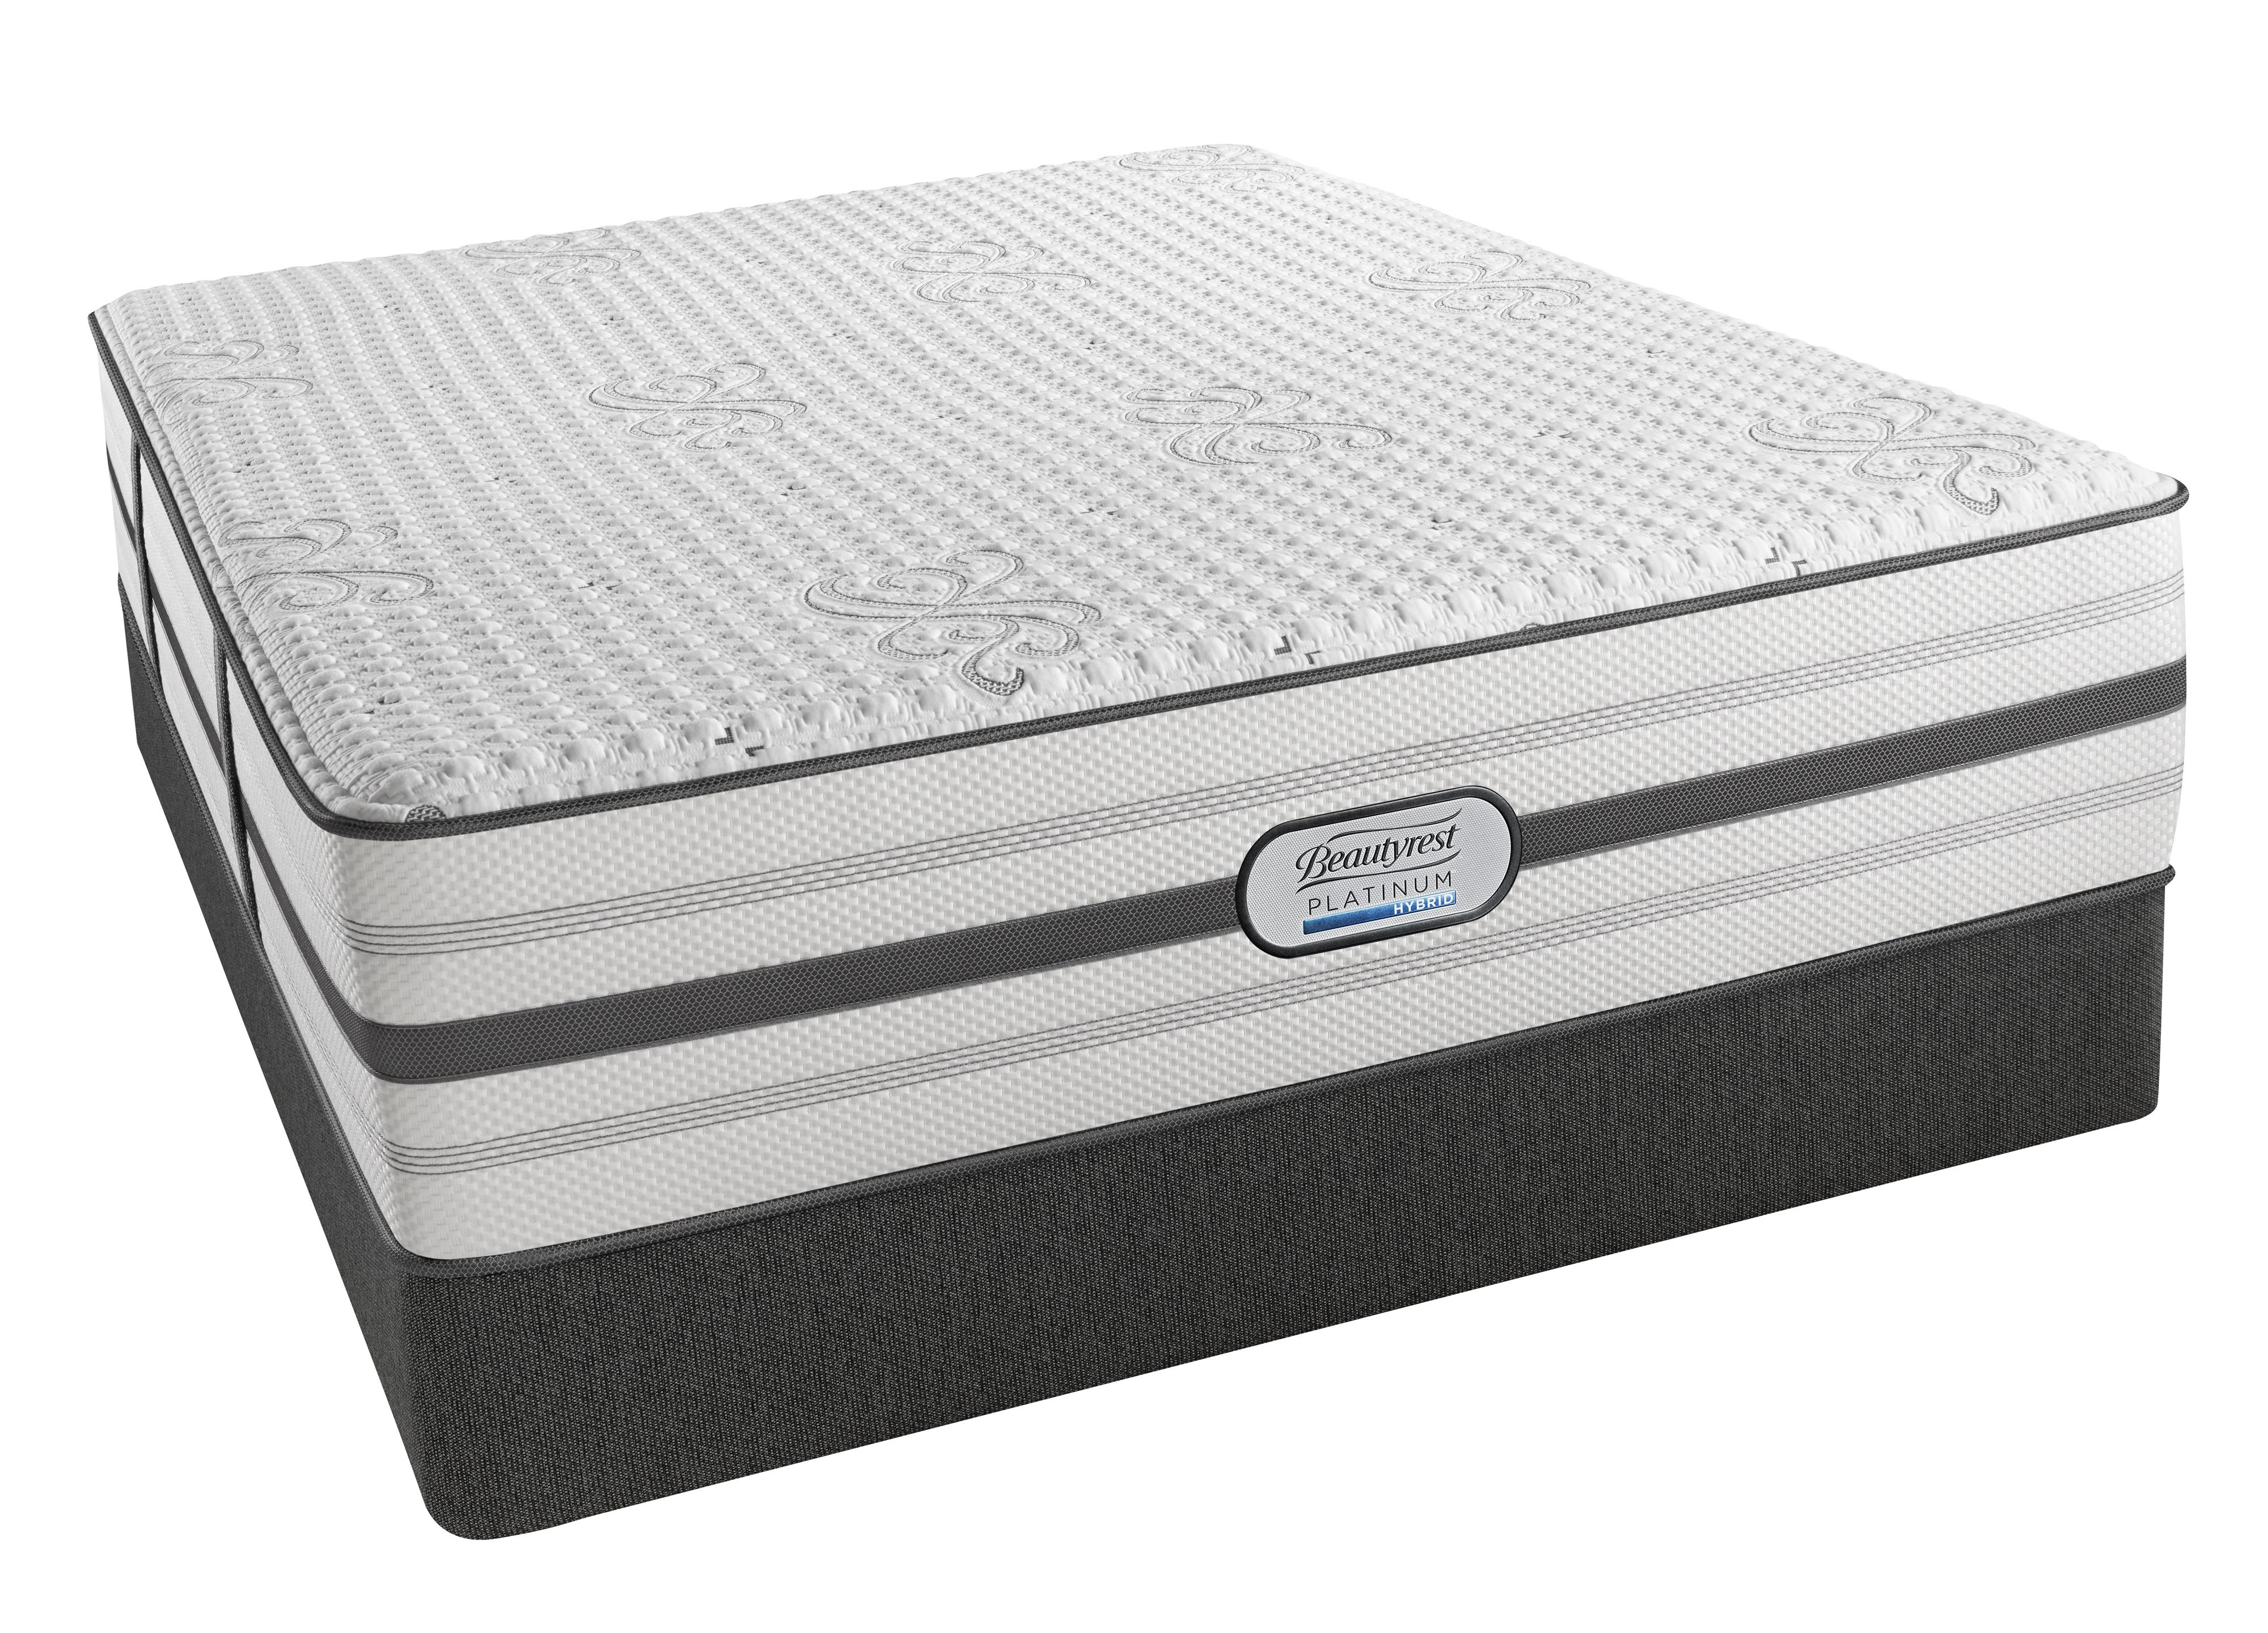 Beautyrest Platinum Austin Full Luxury Firm Low Profile Set - Item Number: BRHLV1LF-F+700150470-6030